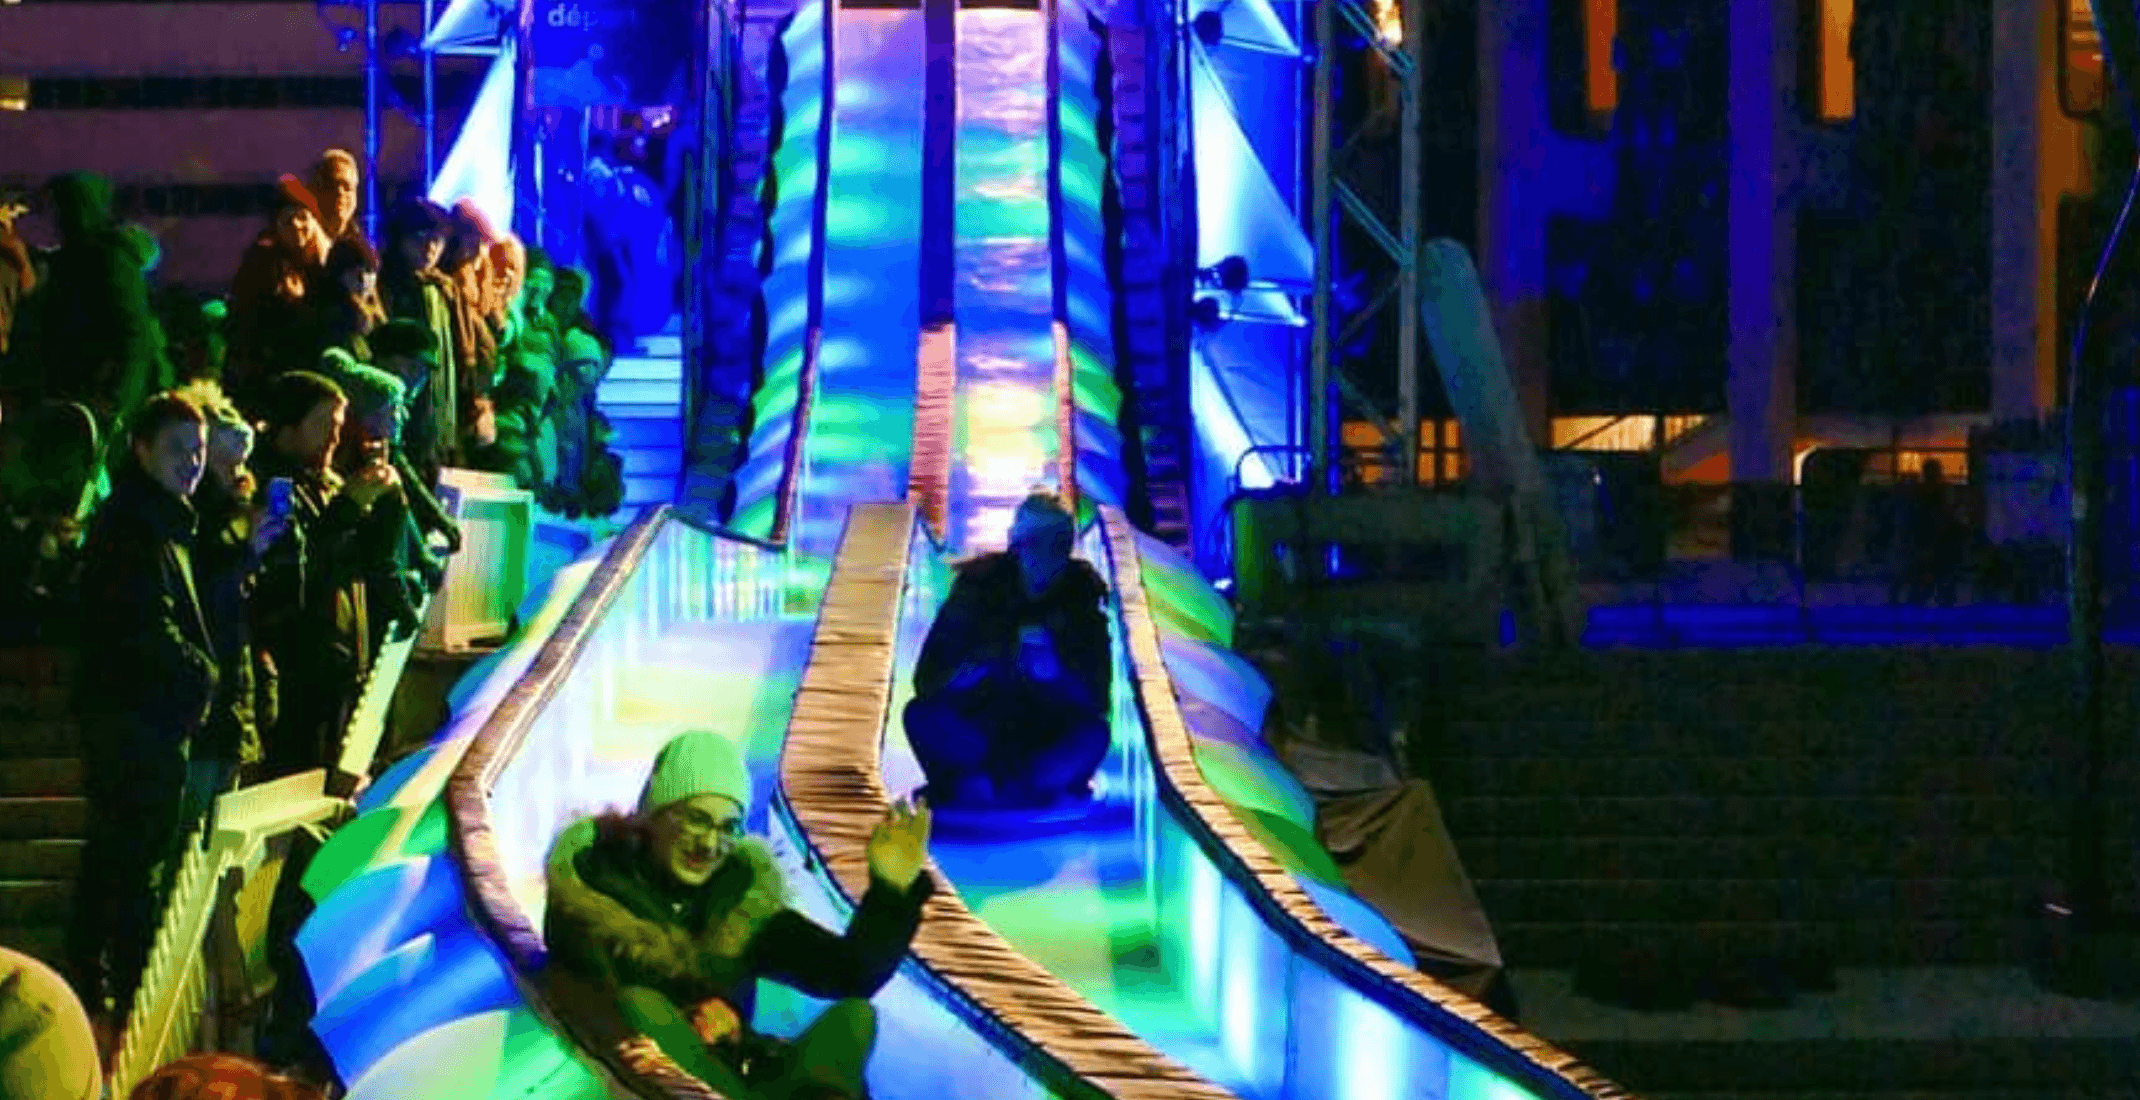 You can now ride down these giant light-up slides in Montreal